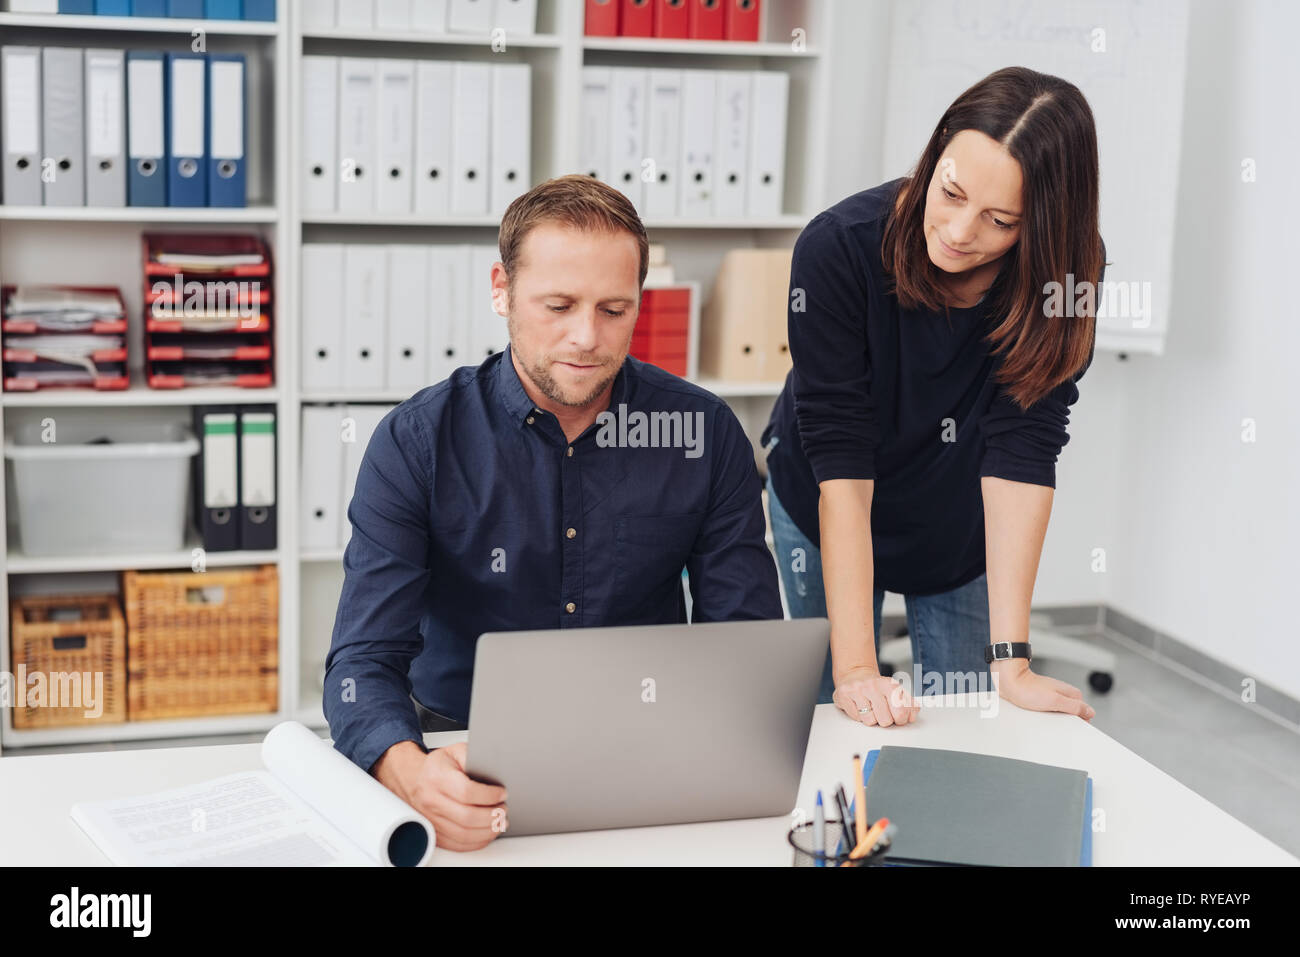 Businessman and woman reading a laptop together in the office with serious expressions as the woman leans over the table alongside her colleague - Stock Image